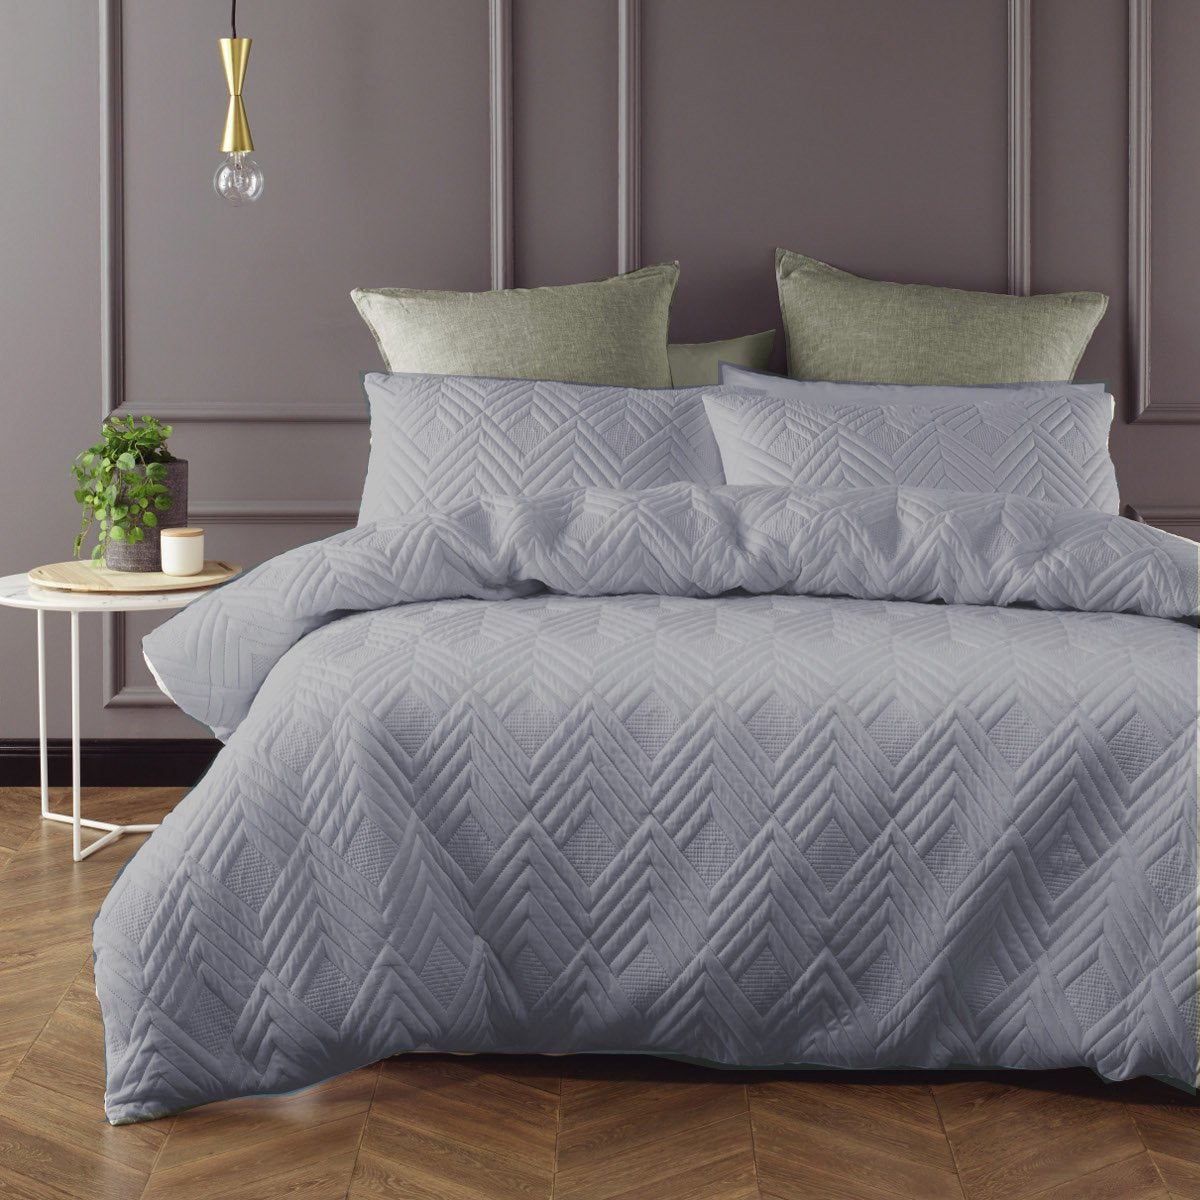 Grey duvet cover set is Sophisticated, Minimal and understated addition with the quilted effect fabric.